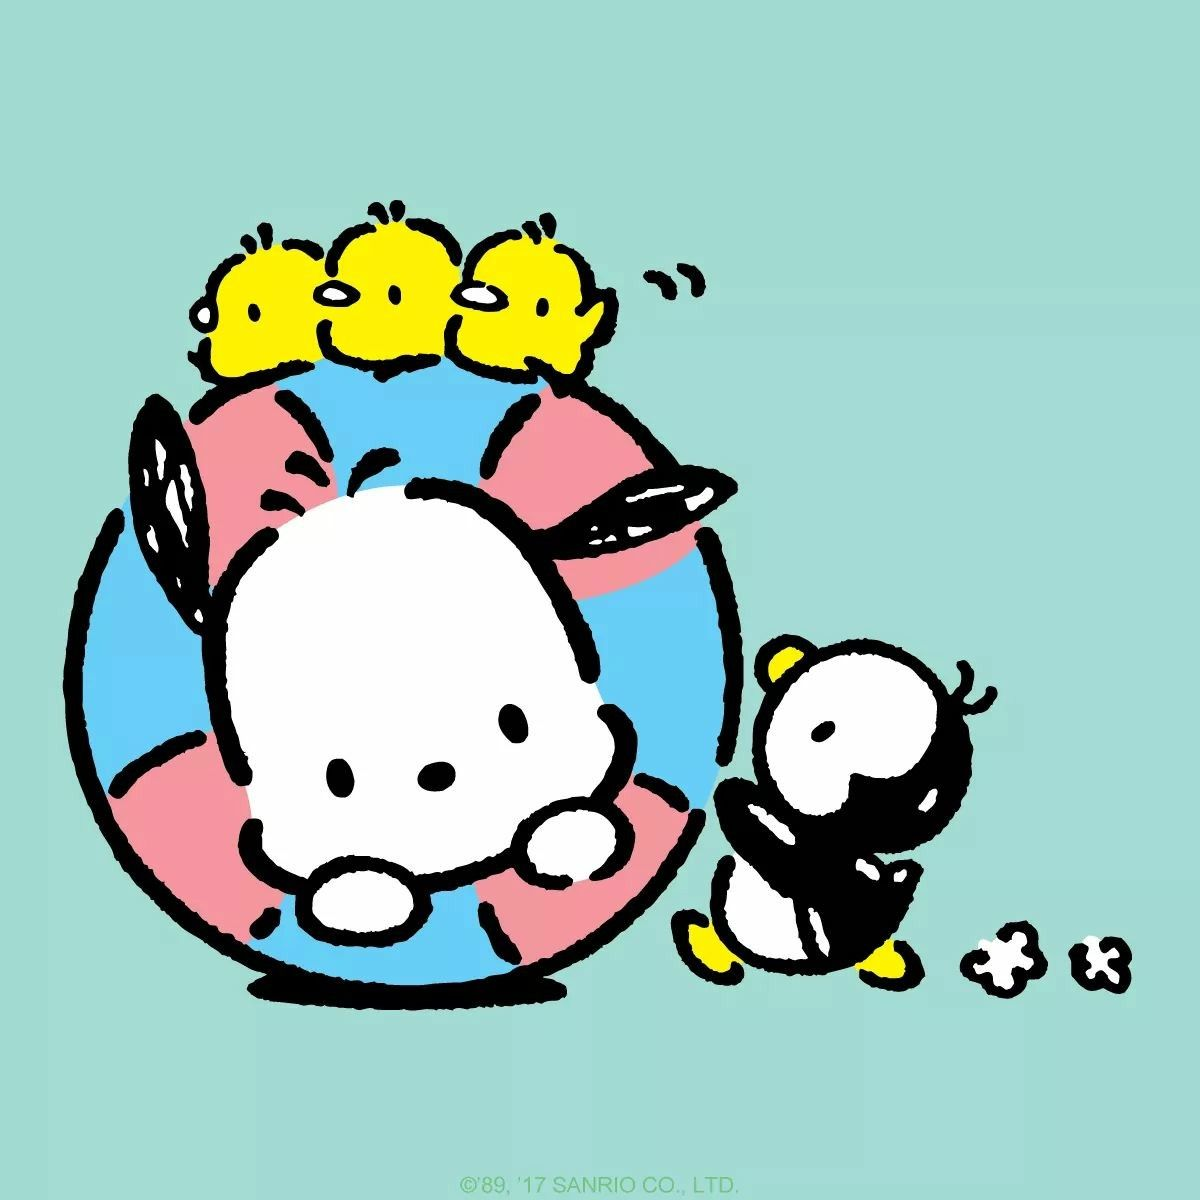 Uh Oh! Looks Like Pochacco Is Stuck In His Floatie. Thank